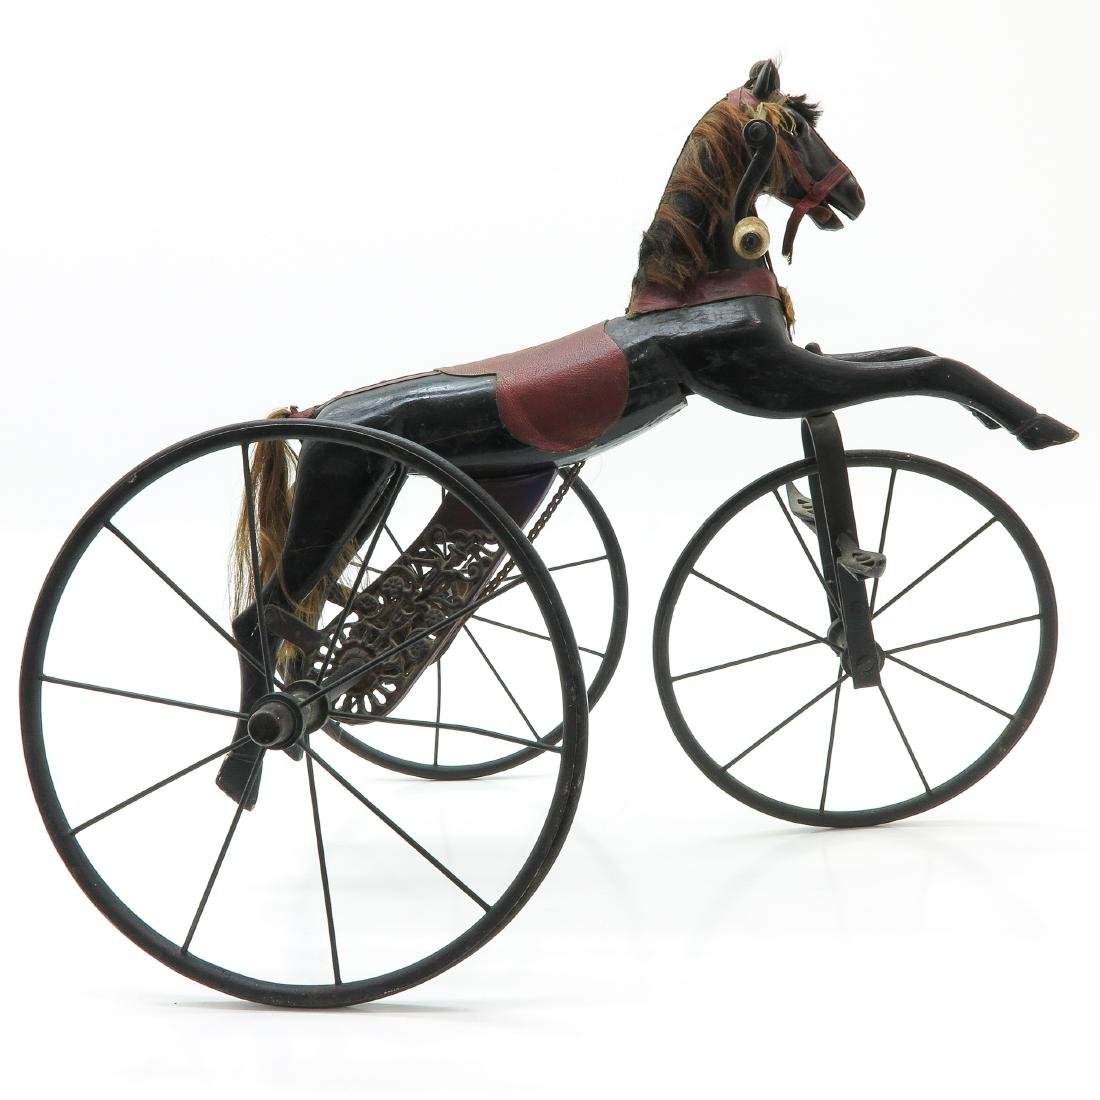 A Nice Antique French Toy Horse on Wheels Circa 1880